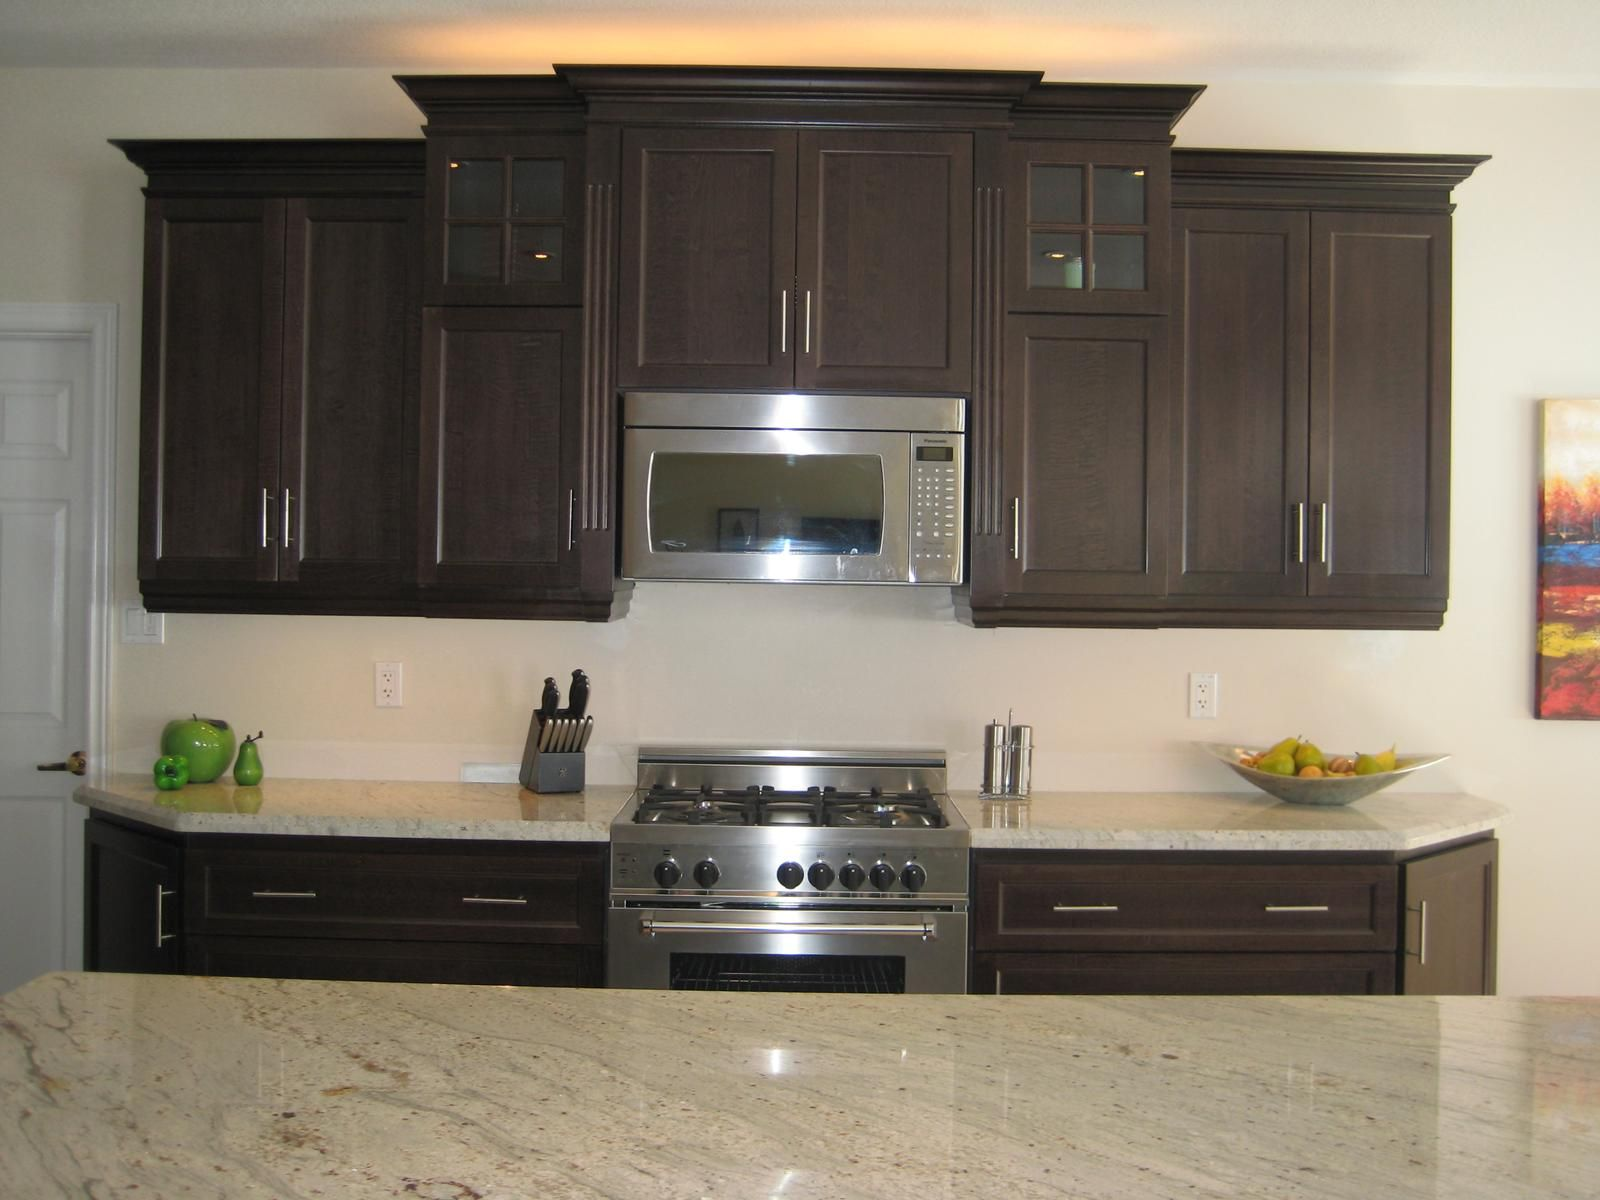 Kashmir white granite dark cabinets roselawnlutheran for Pictures of white kitchen cabinets with granite countertops